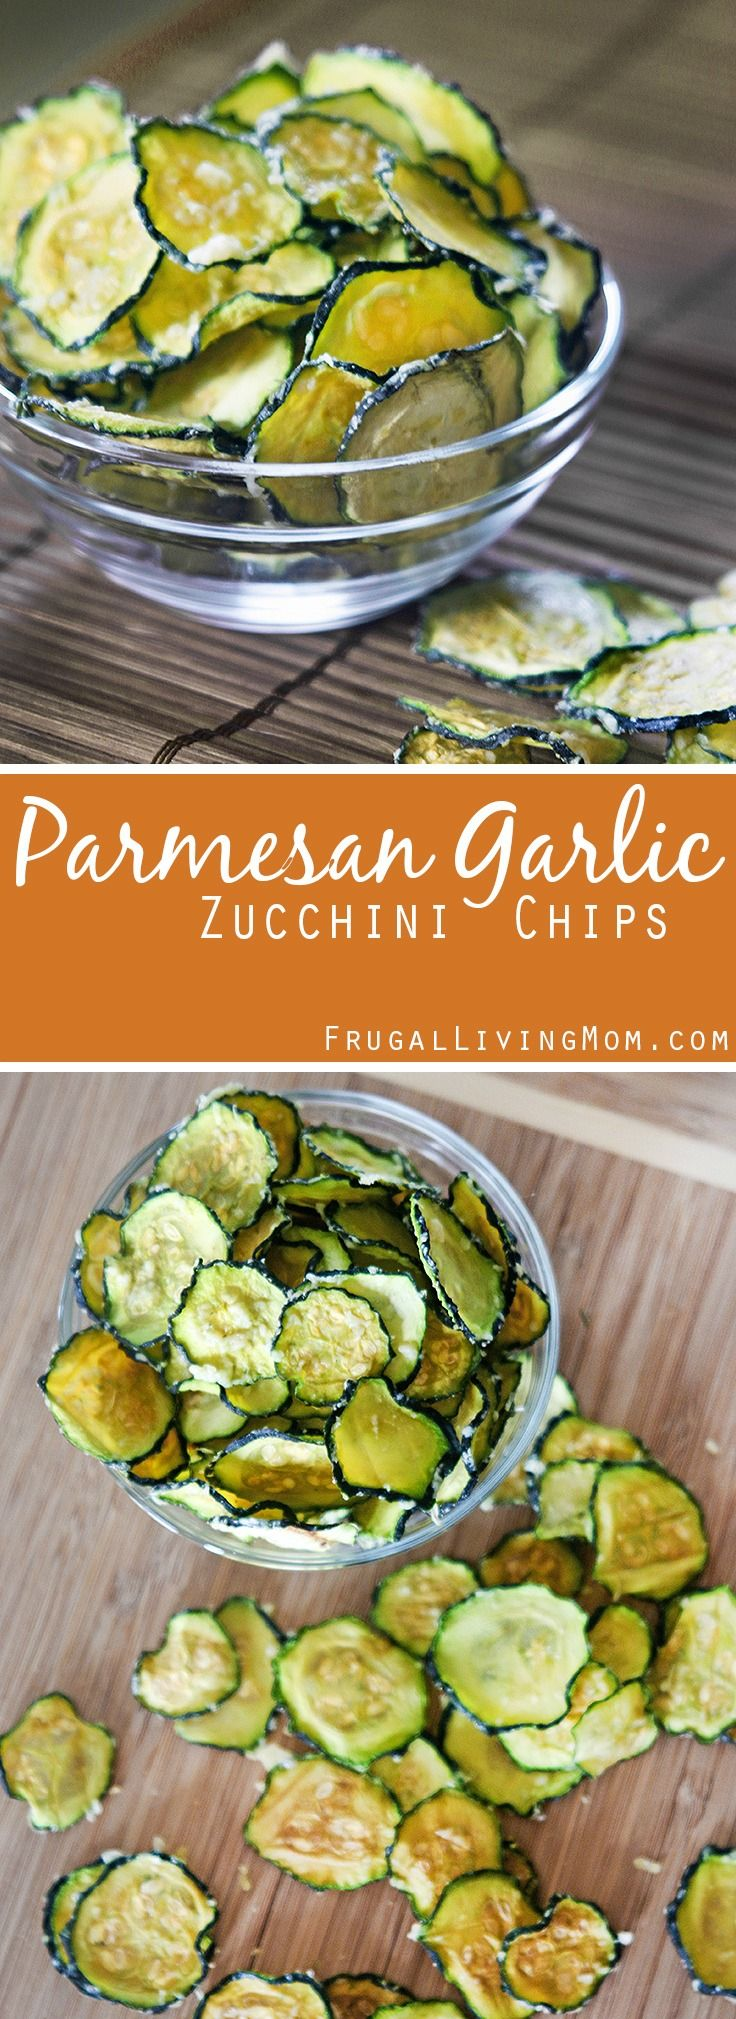 Parmesan Garlic Zucchini Chips!! Yum! Looking for a #healthy snack for the whole family? Give these a try.